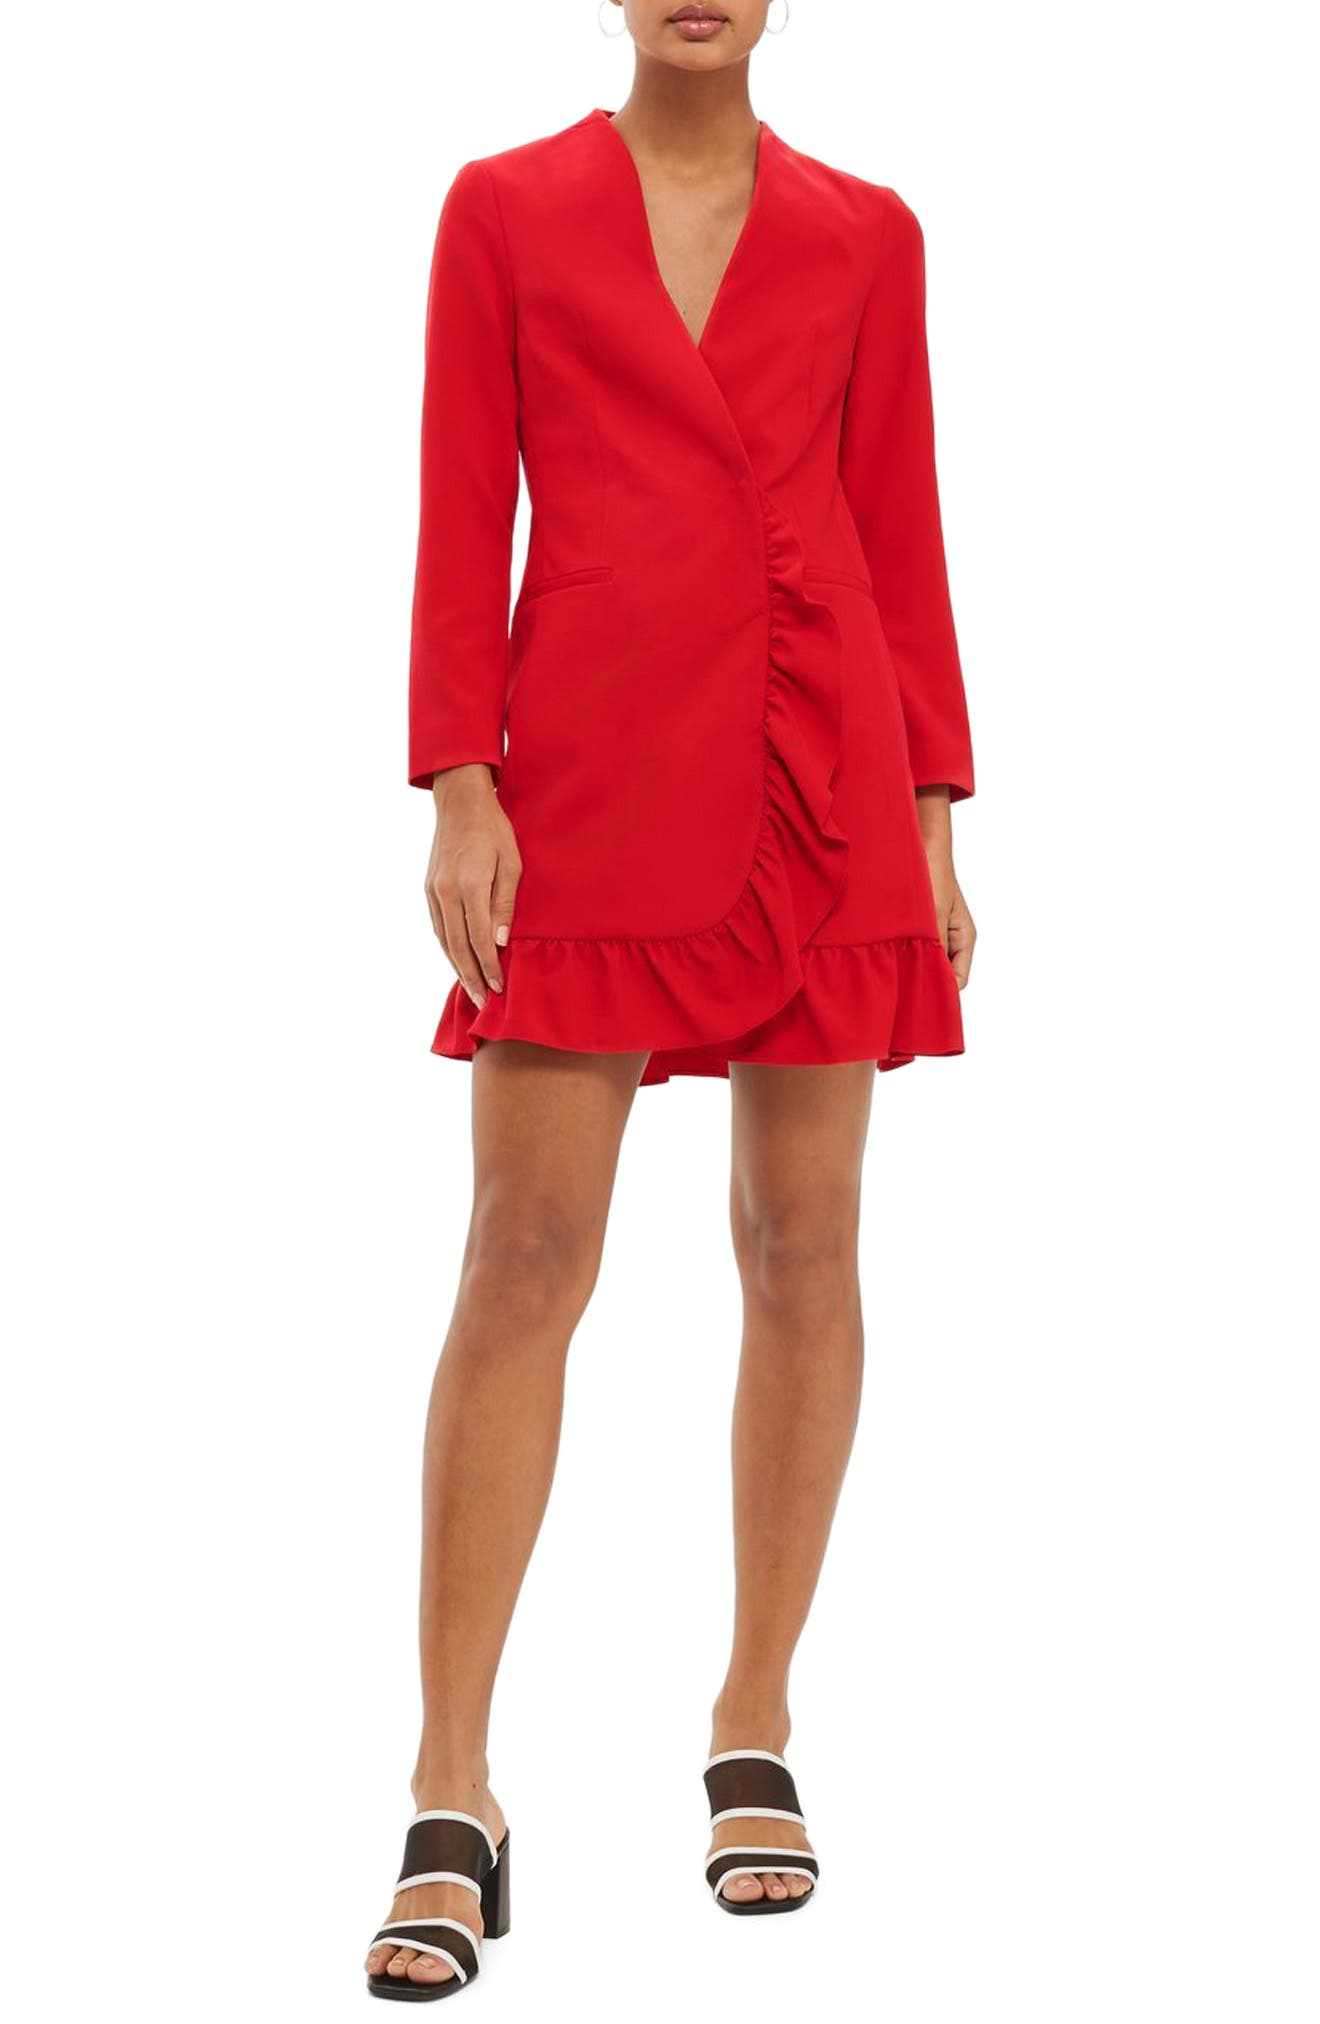 Topshop Ruffle Blazer Dress